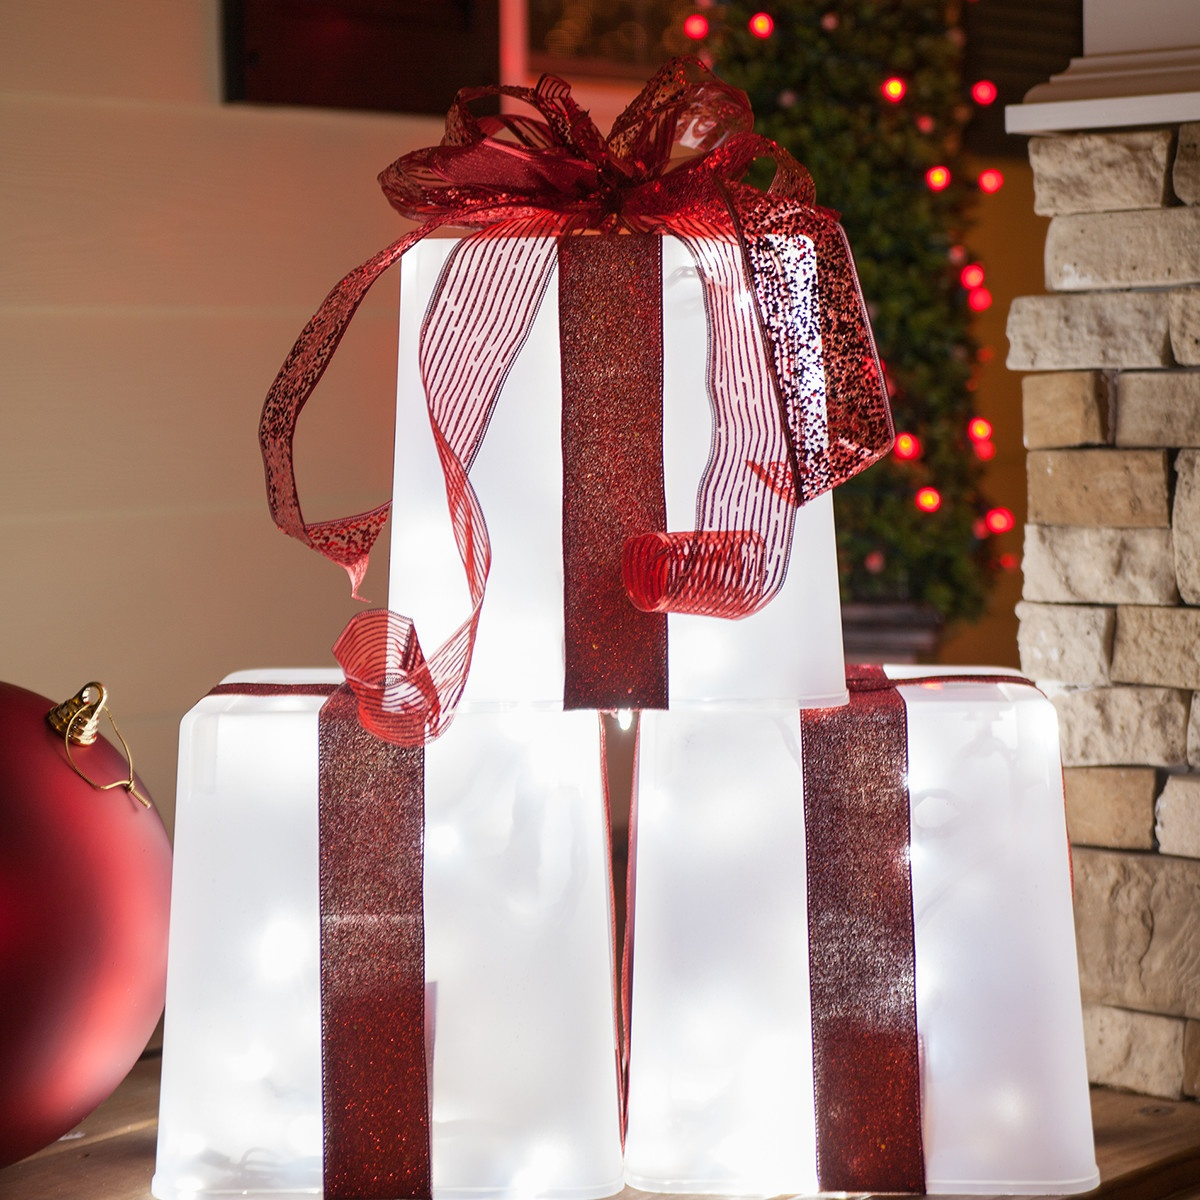 create diy lighted gift boxes using plastic containers string lights and christmas ribbon - Diy Lighted Outdoor Christmas Decorations